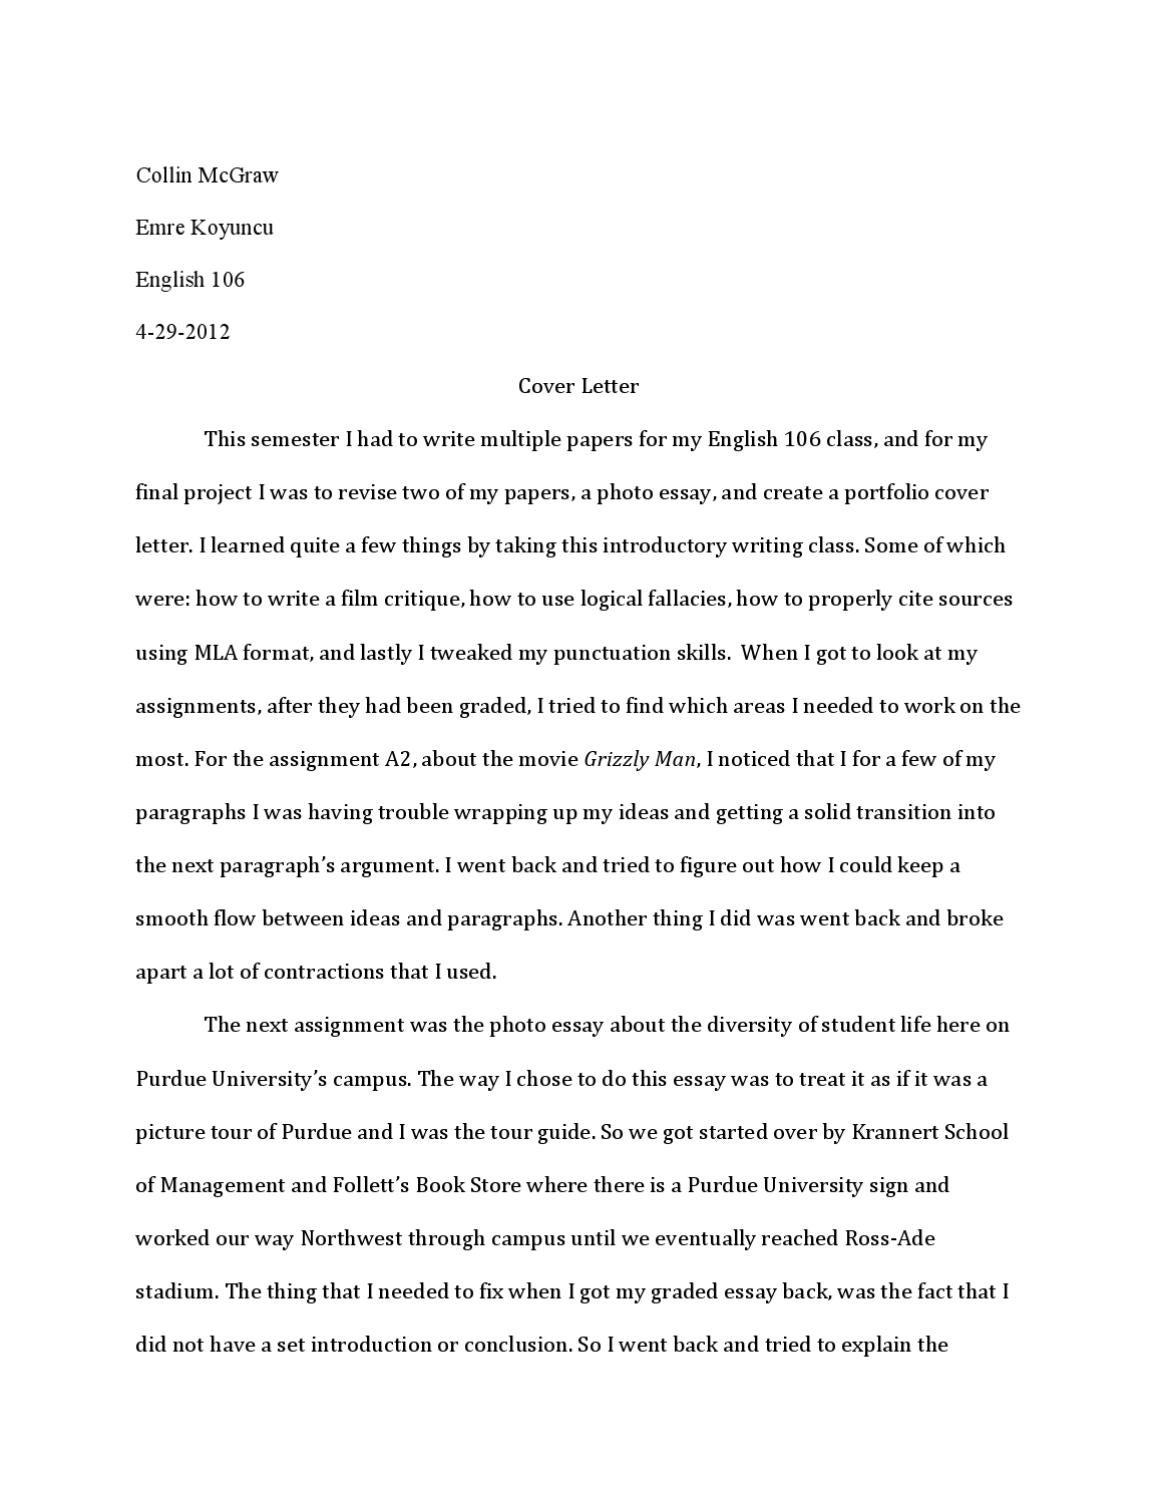 final portfolio cover letter by collin mcgraw